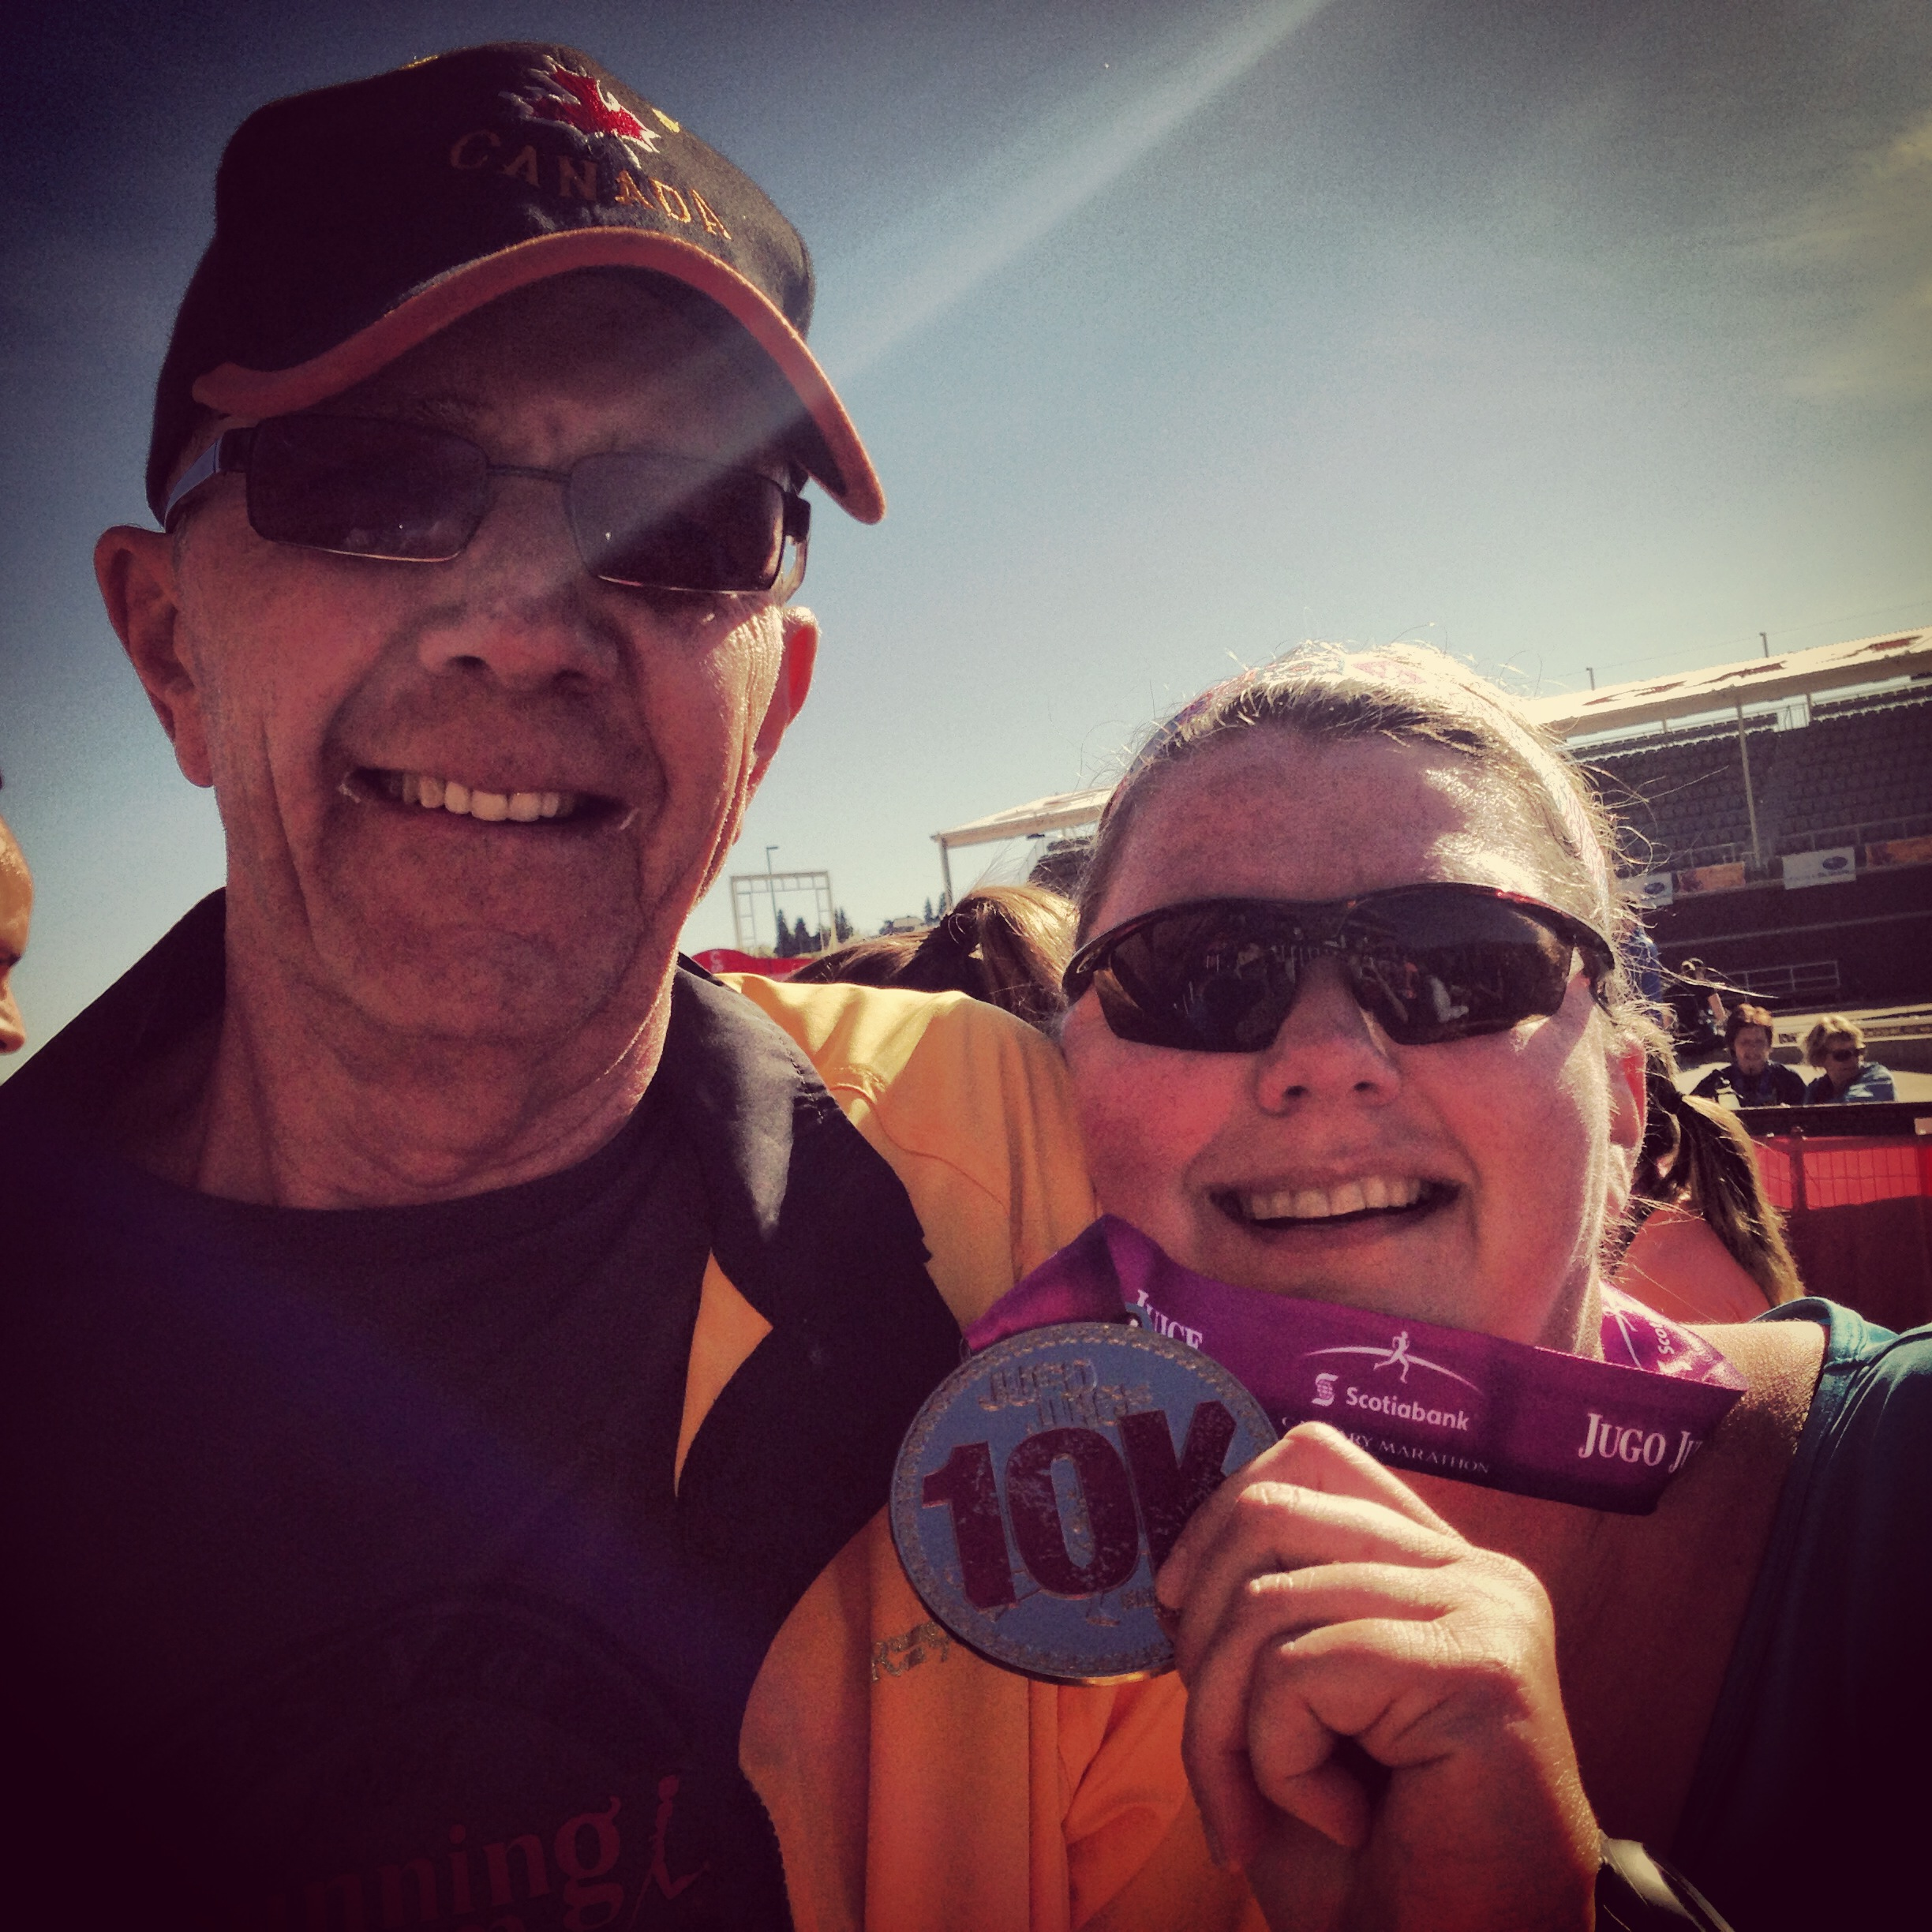 Me and Dadeo at the finish